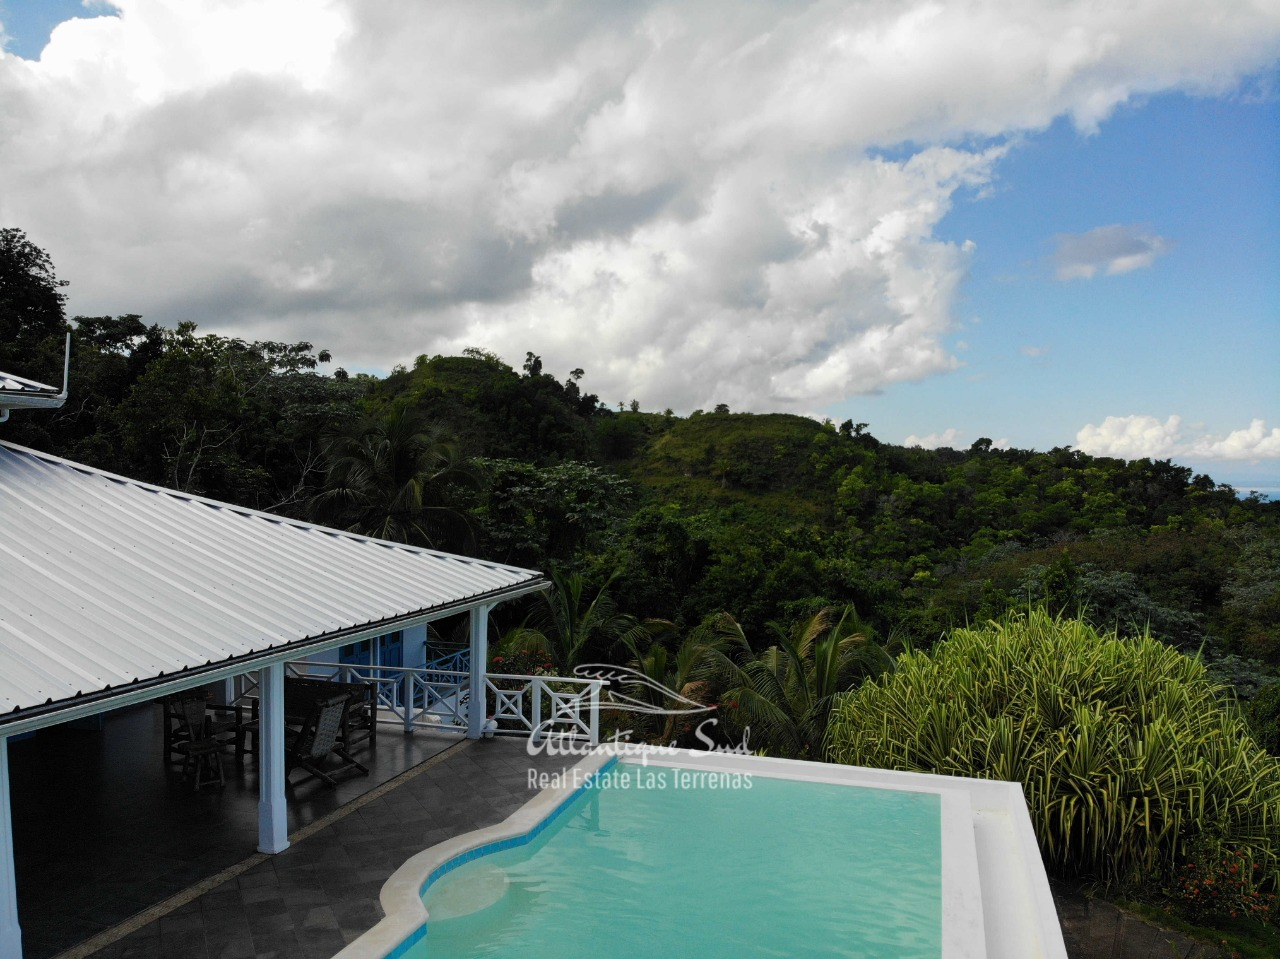 Villa on hill for sale in Las Terrenas DR 7.jpeg